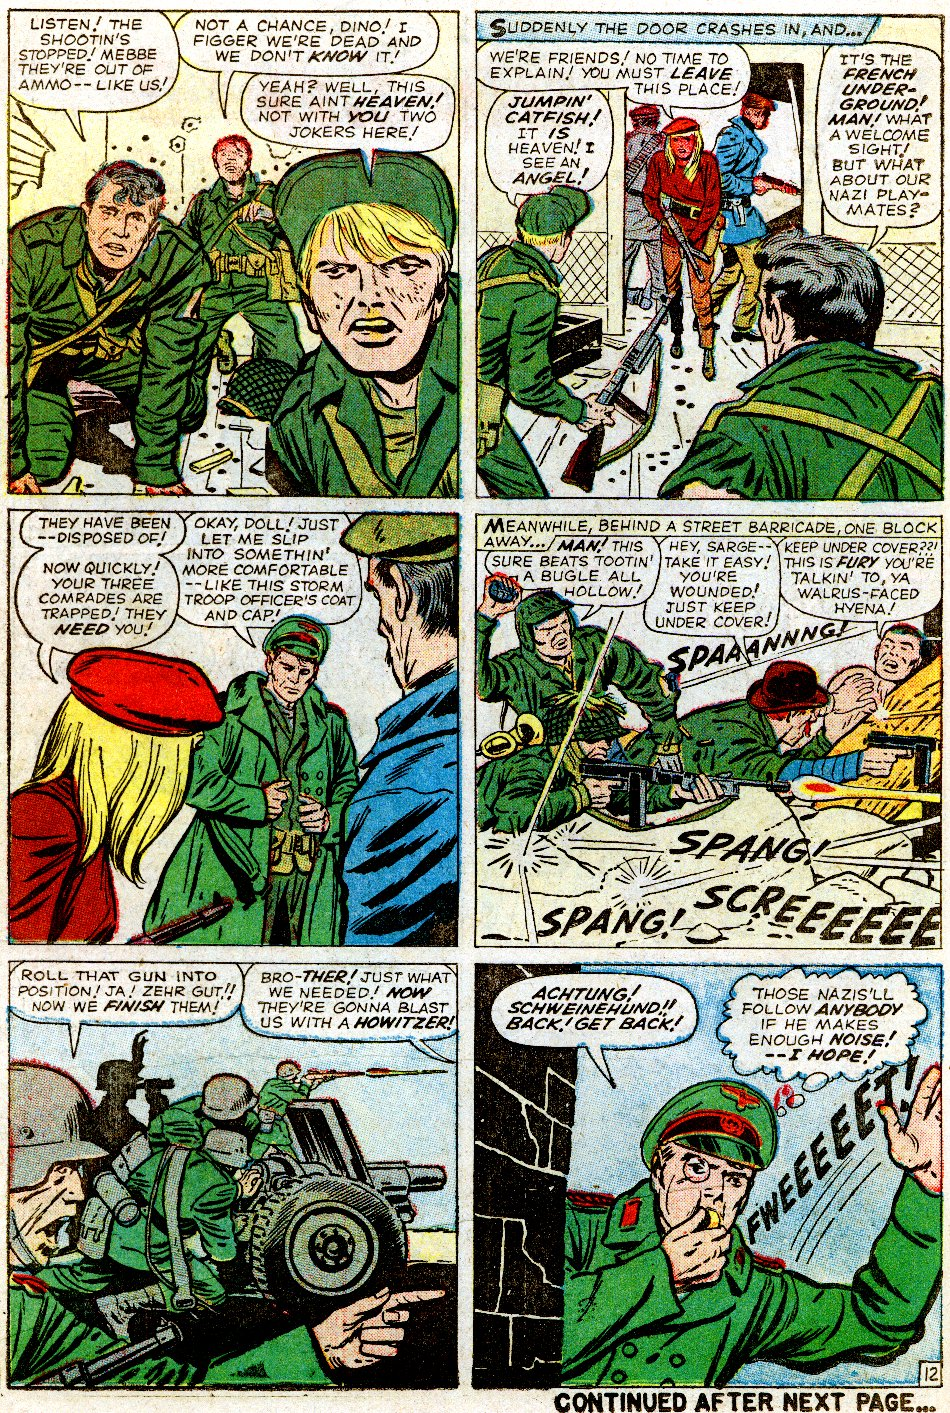 Read online Sgt. Fury comic -  Issue #1 - 18